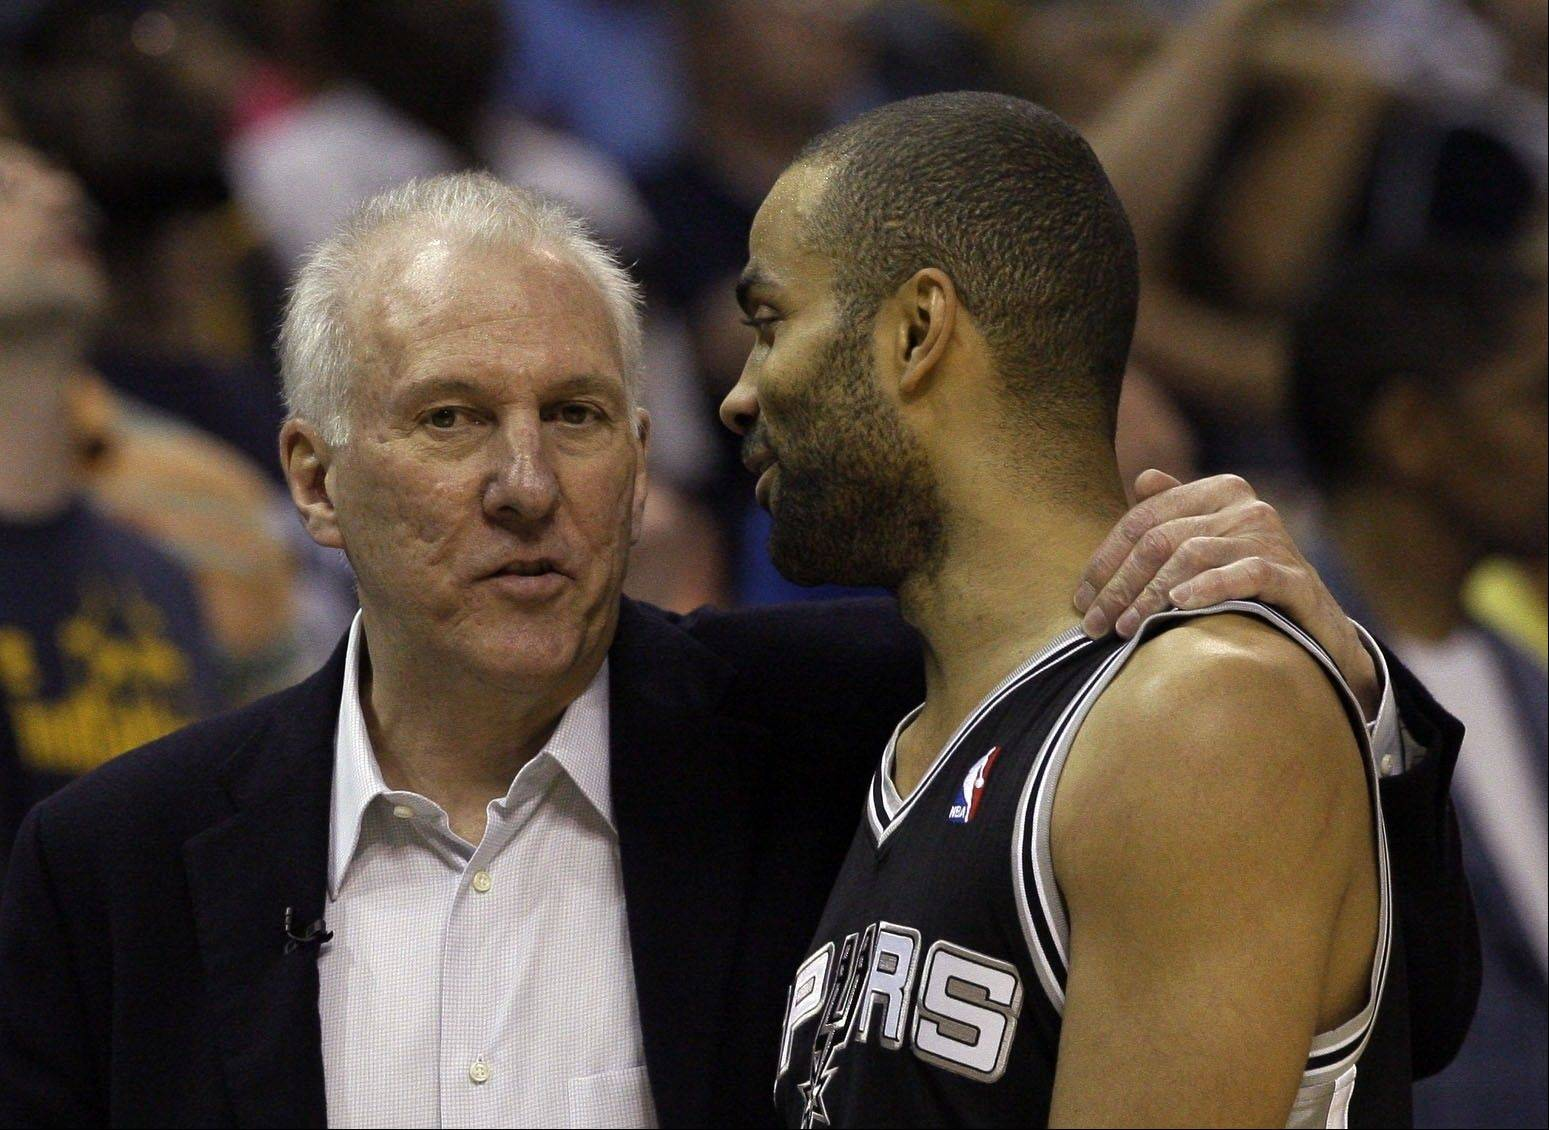 San Antonio Spurs head coach Gregg Popovich, left, talks to San Antonio Spurs guard Tony Parker during a timeout in the first half of Game 4 of the Western Conference finals NBA basketball playoff series against the Memphis Grizzlies, in Memphis, Tenn., Monday, May 27, 2013.